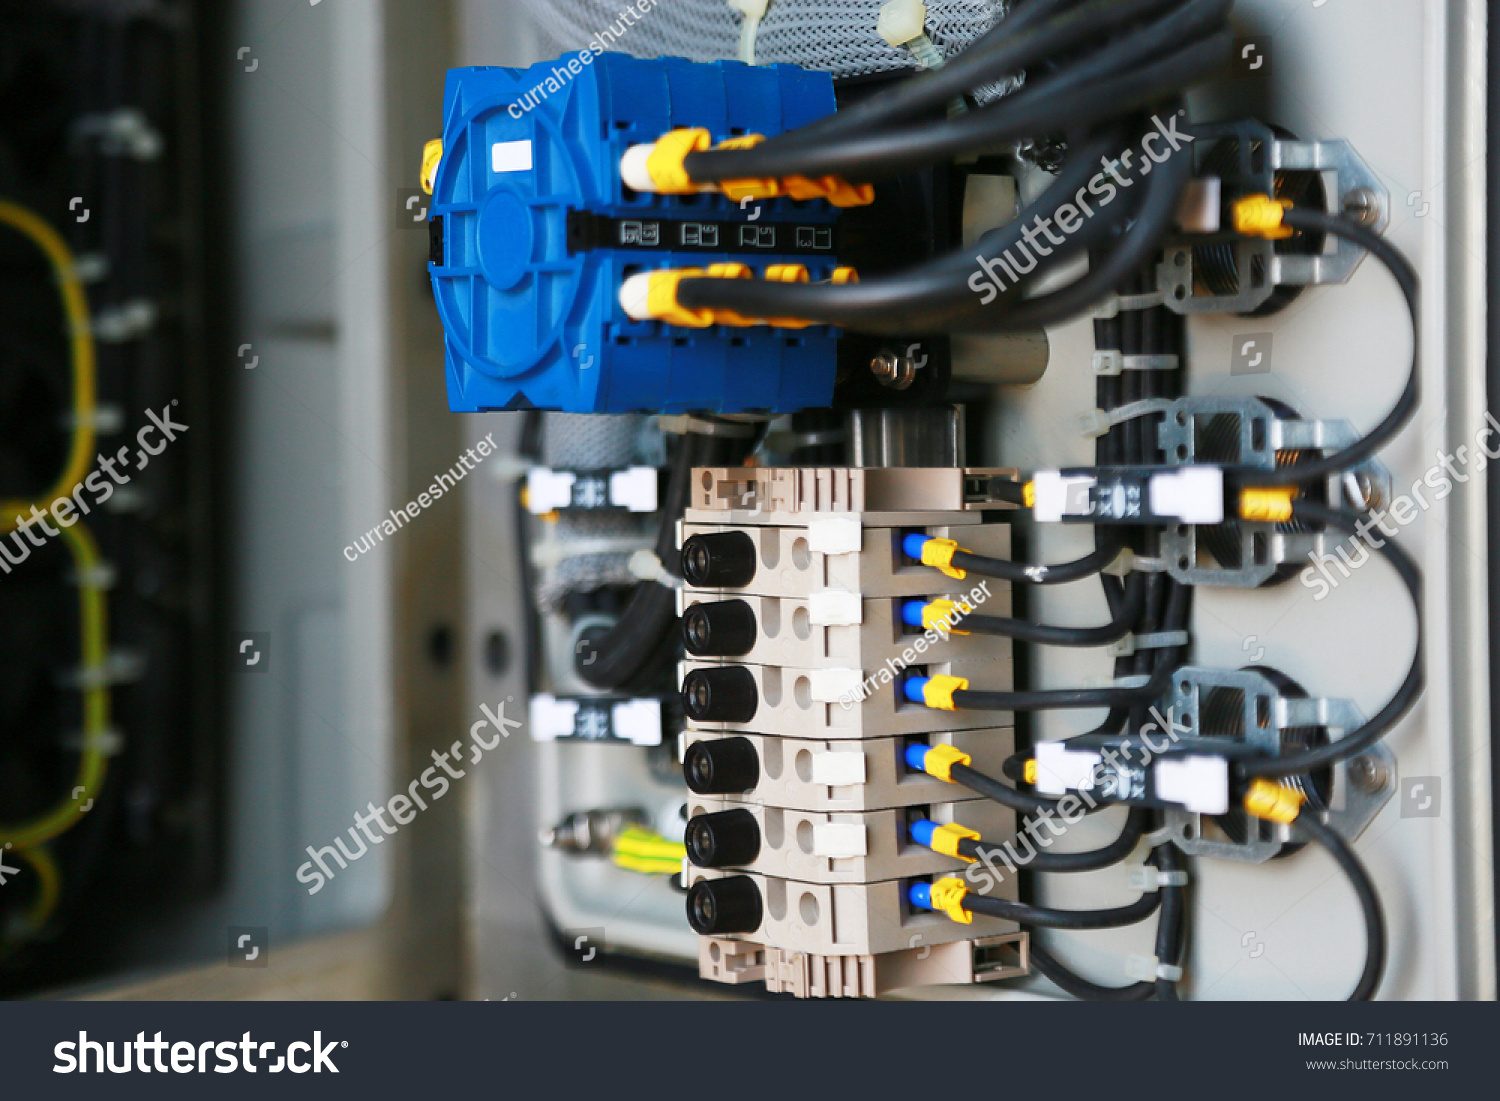 Electrical Terminal Junction Box Service By Stock Photo (Royalty ...